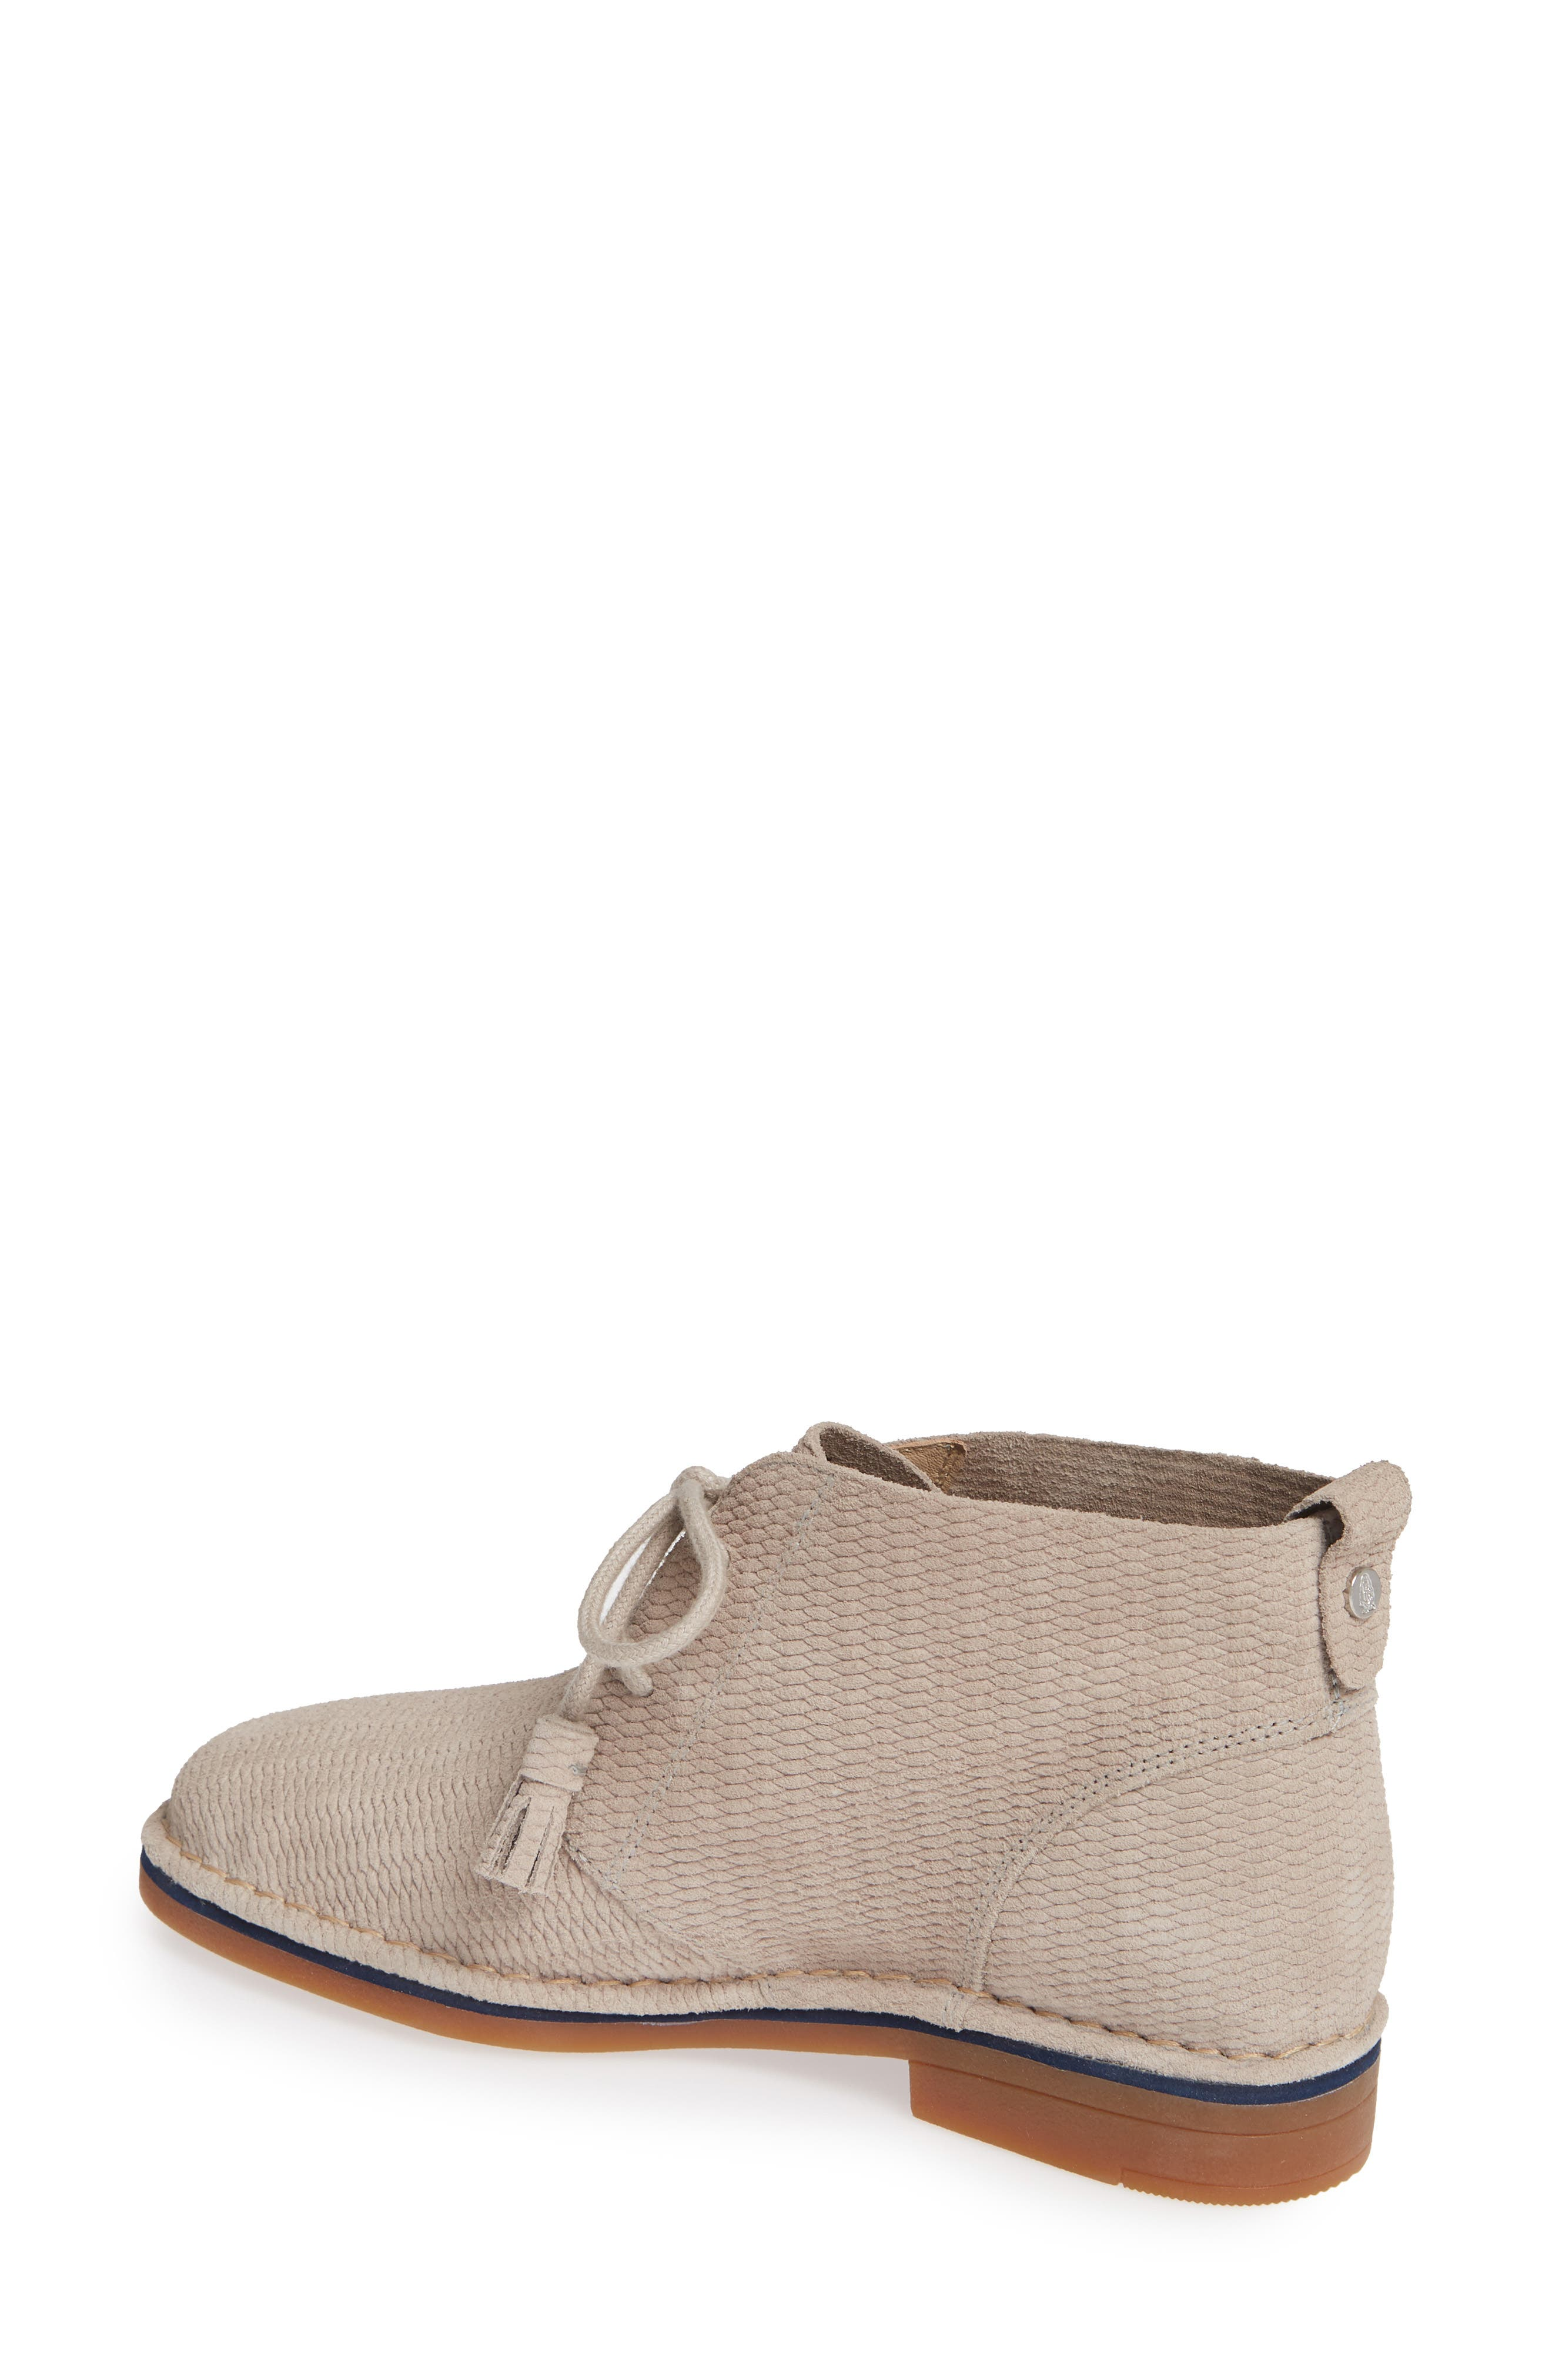 'Cyra Catelyn' Chukka Boot,                             Alternate thumbnail 2, color,                             ICE GREY SUEDE